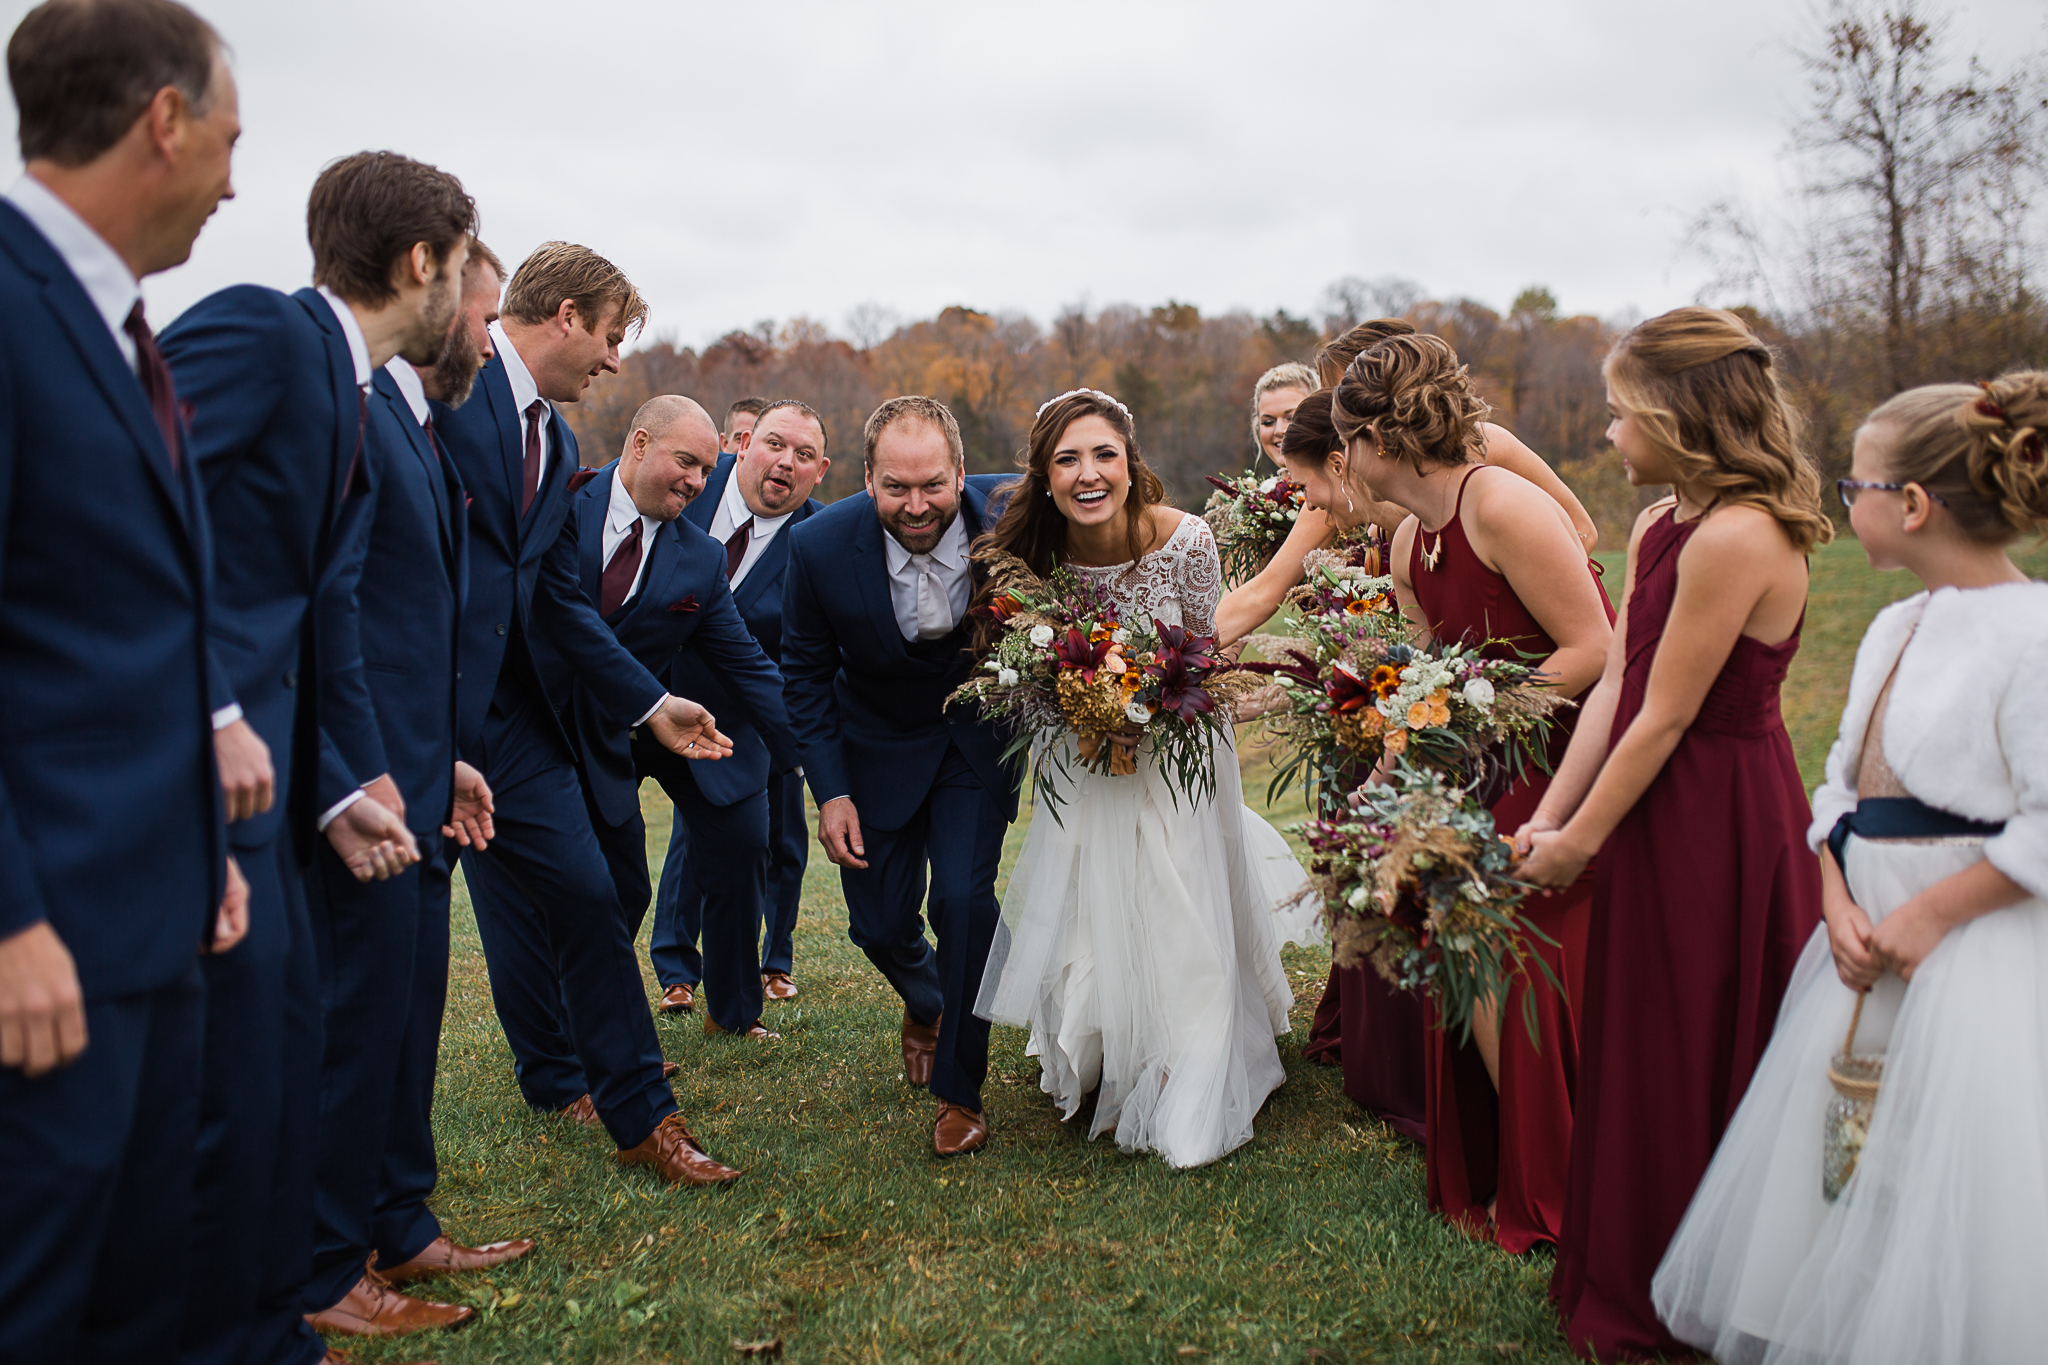 Bride and groom celebrating with their bridal party.